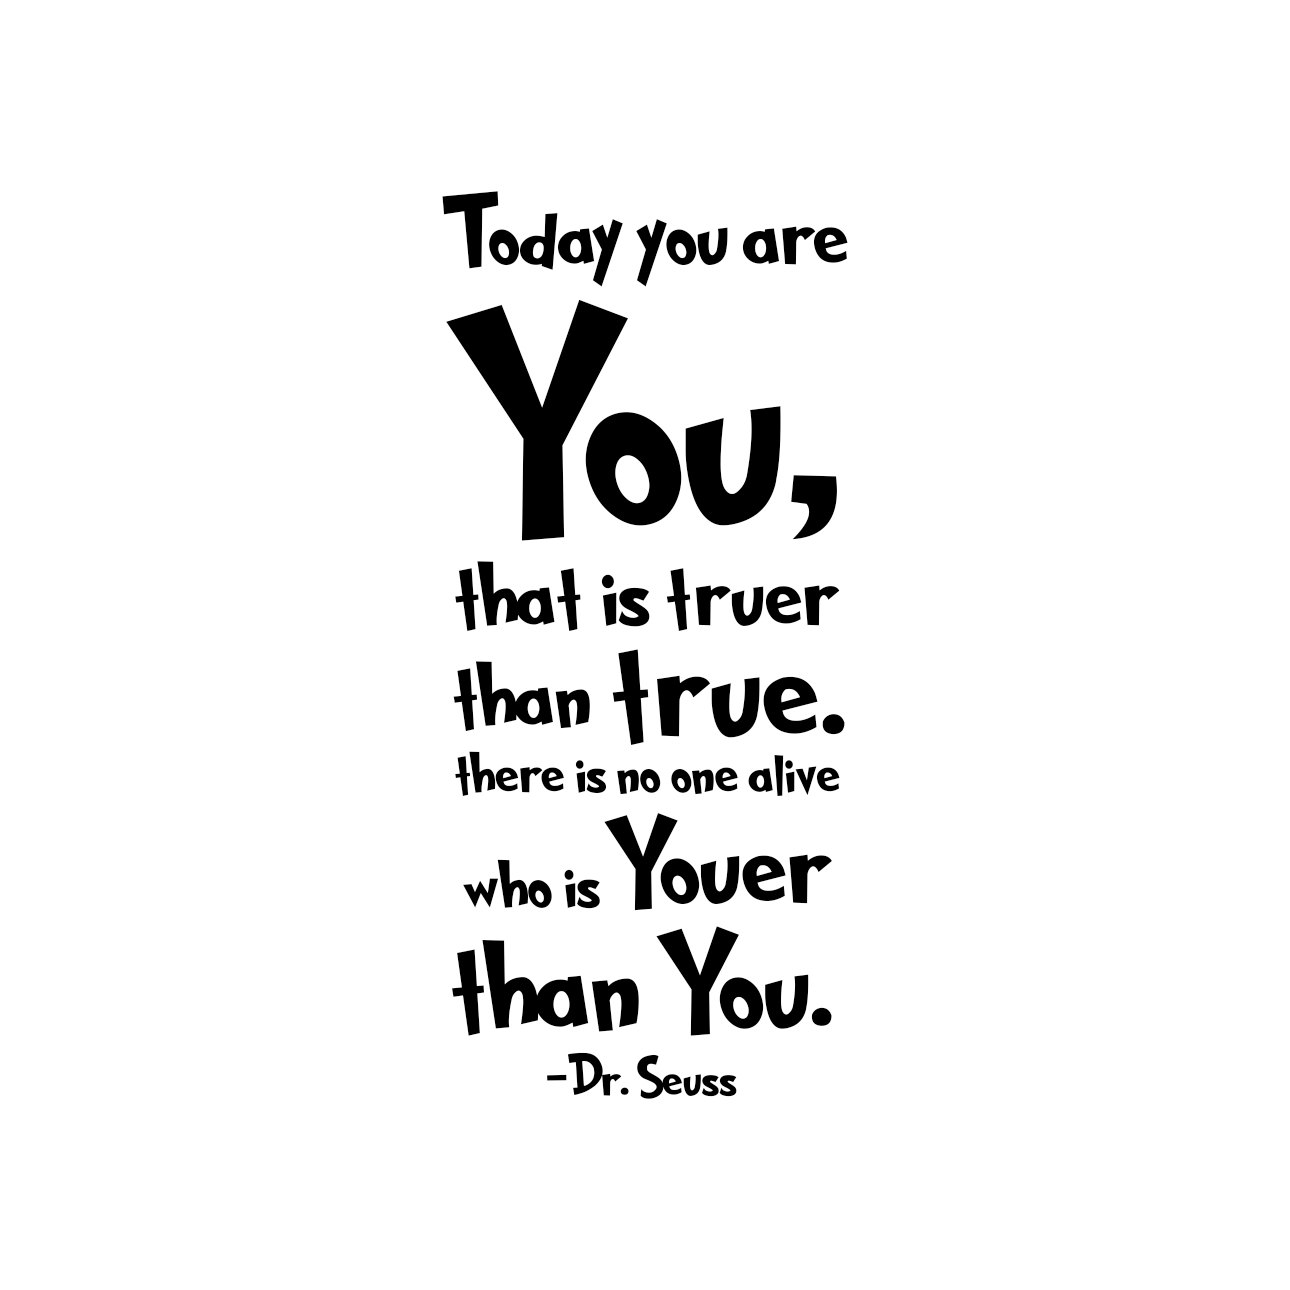 Today You Are You Dr Seuss Quote Graphics By Vectordesign